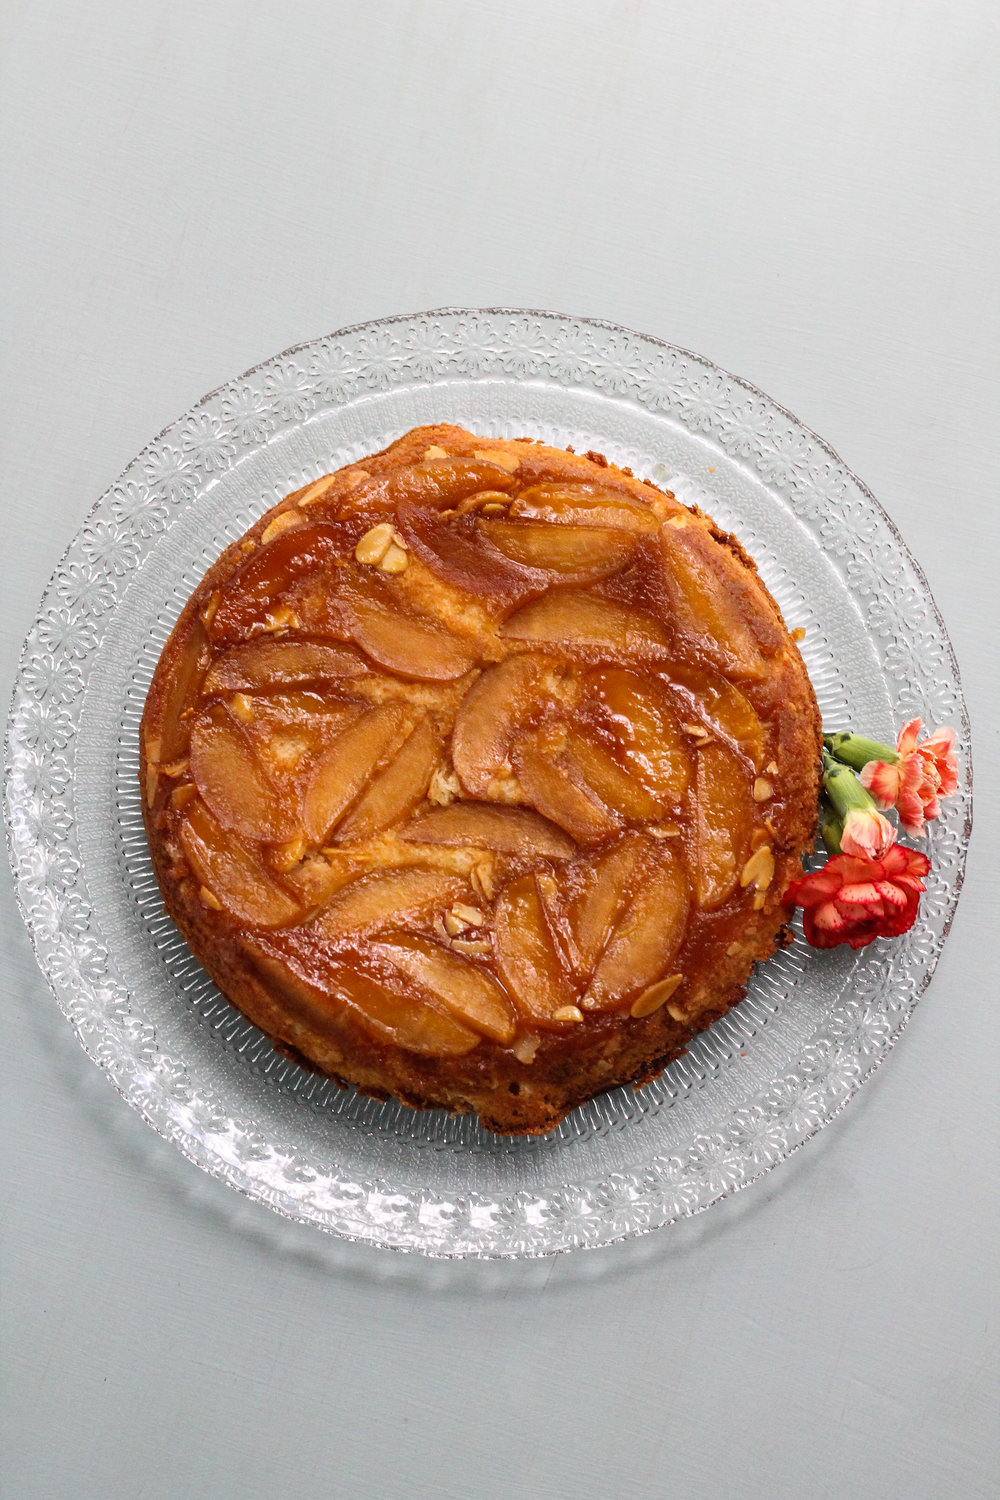 Caramelized apples in a cider glaze are covered with a soft, almond cake and then flipped to create this scrumptious Apple Amaretto Upside Down Cake! [ www.pedanticfoodie.com ]